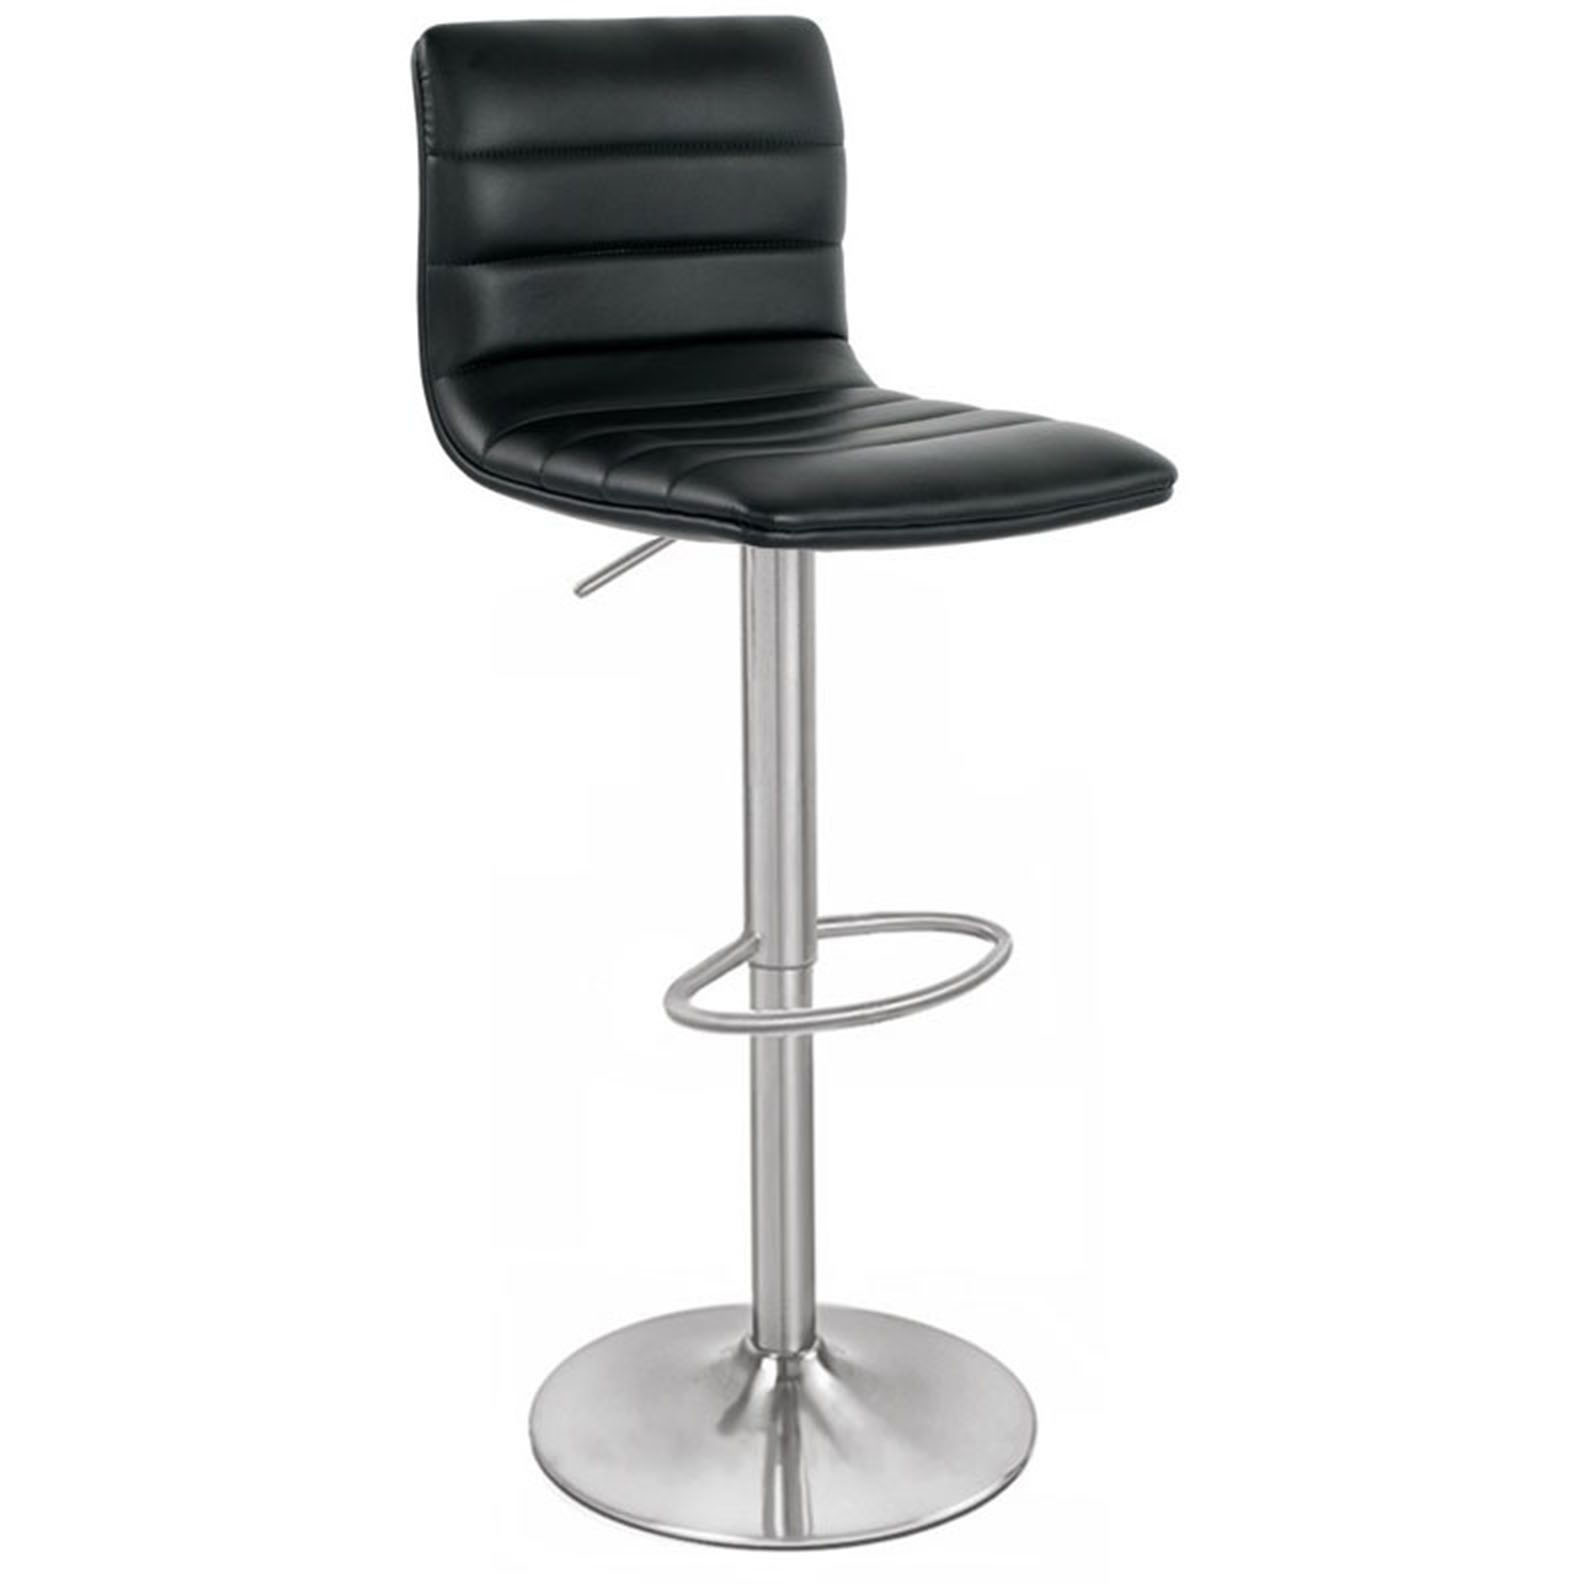 Aldo Brushed Bar Stool - Black Product Image